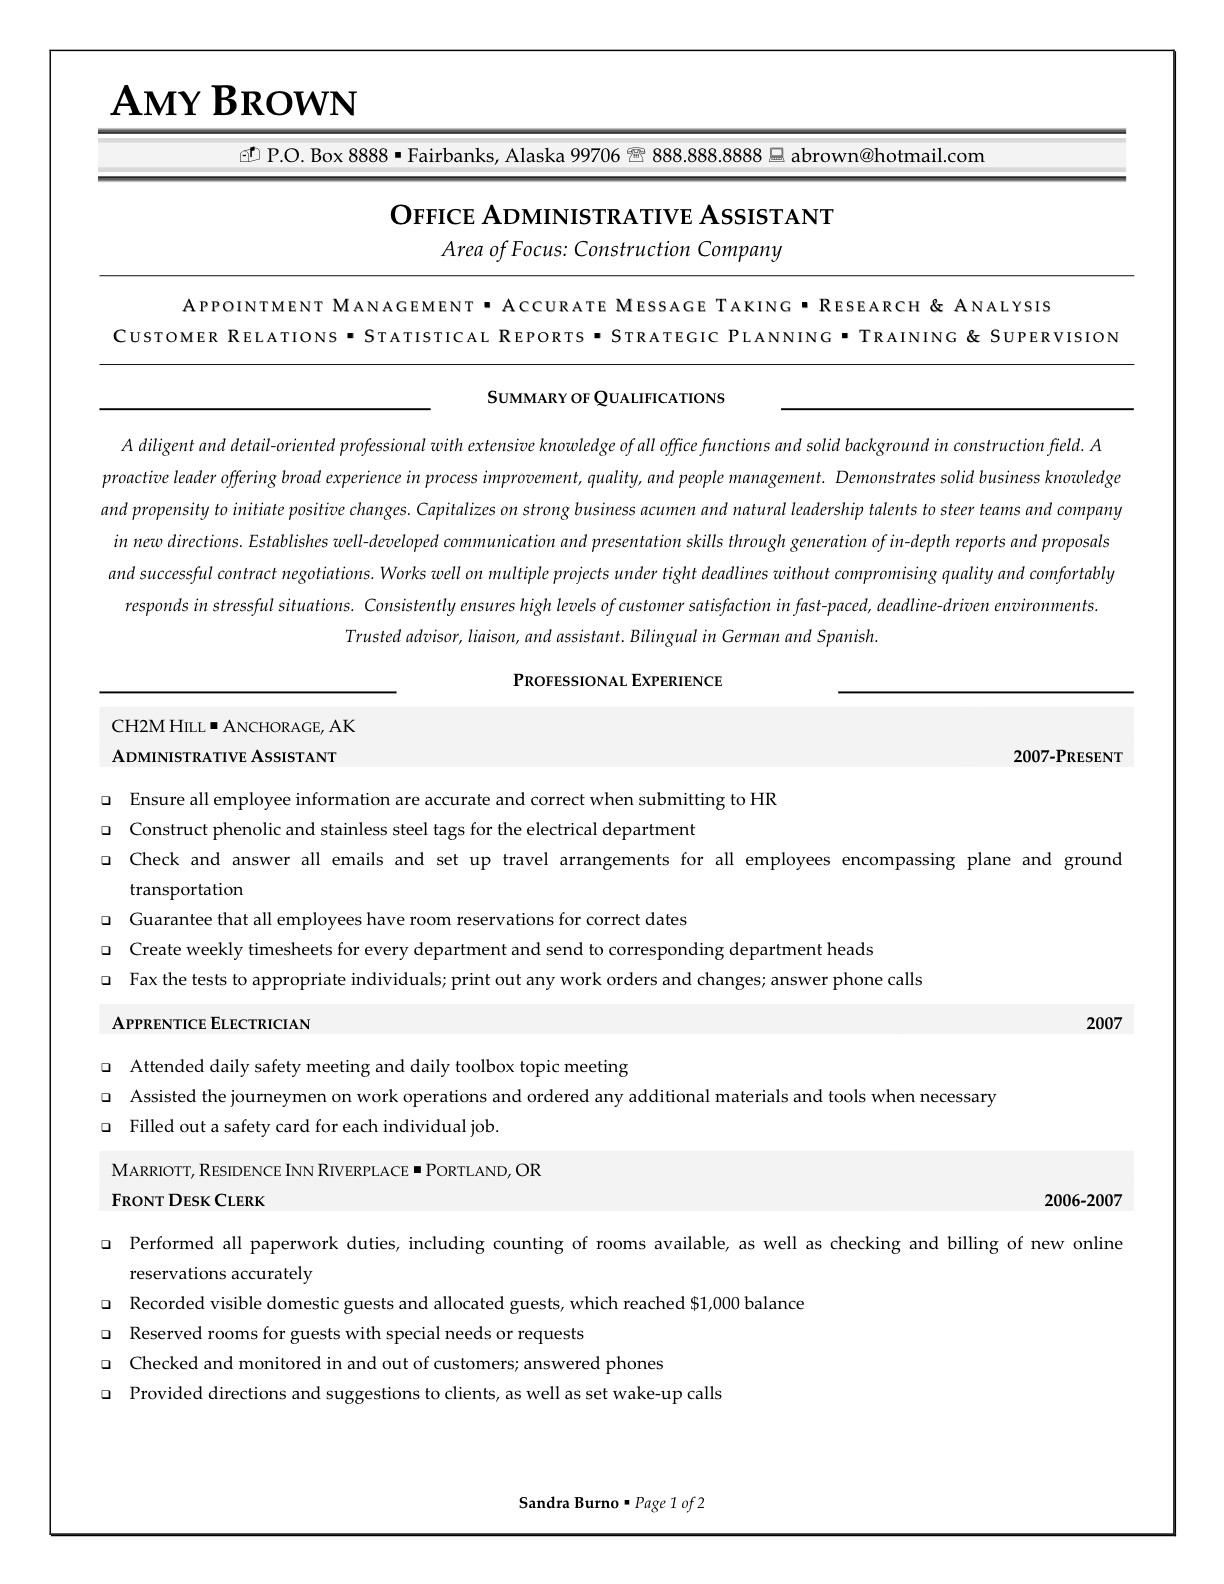 Bank Sales Executive Resume Office Administrative Assistant Sample Resume For